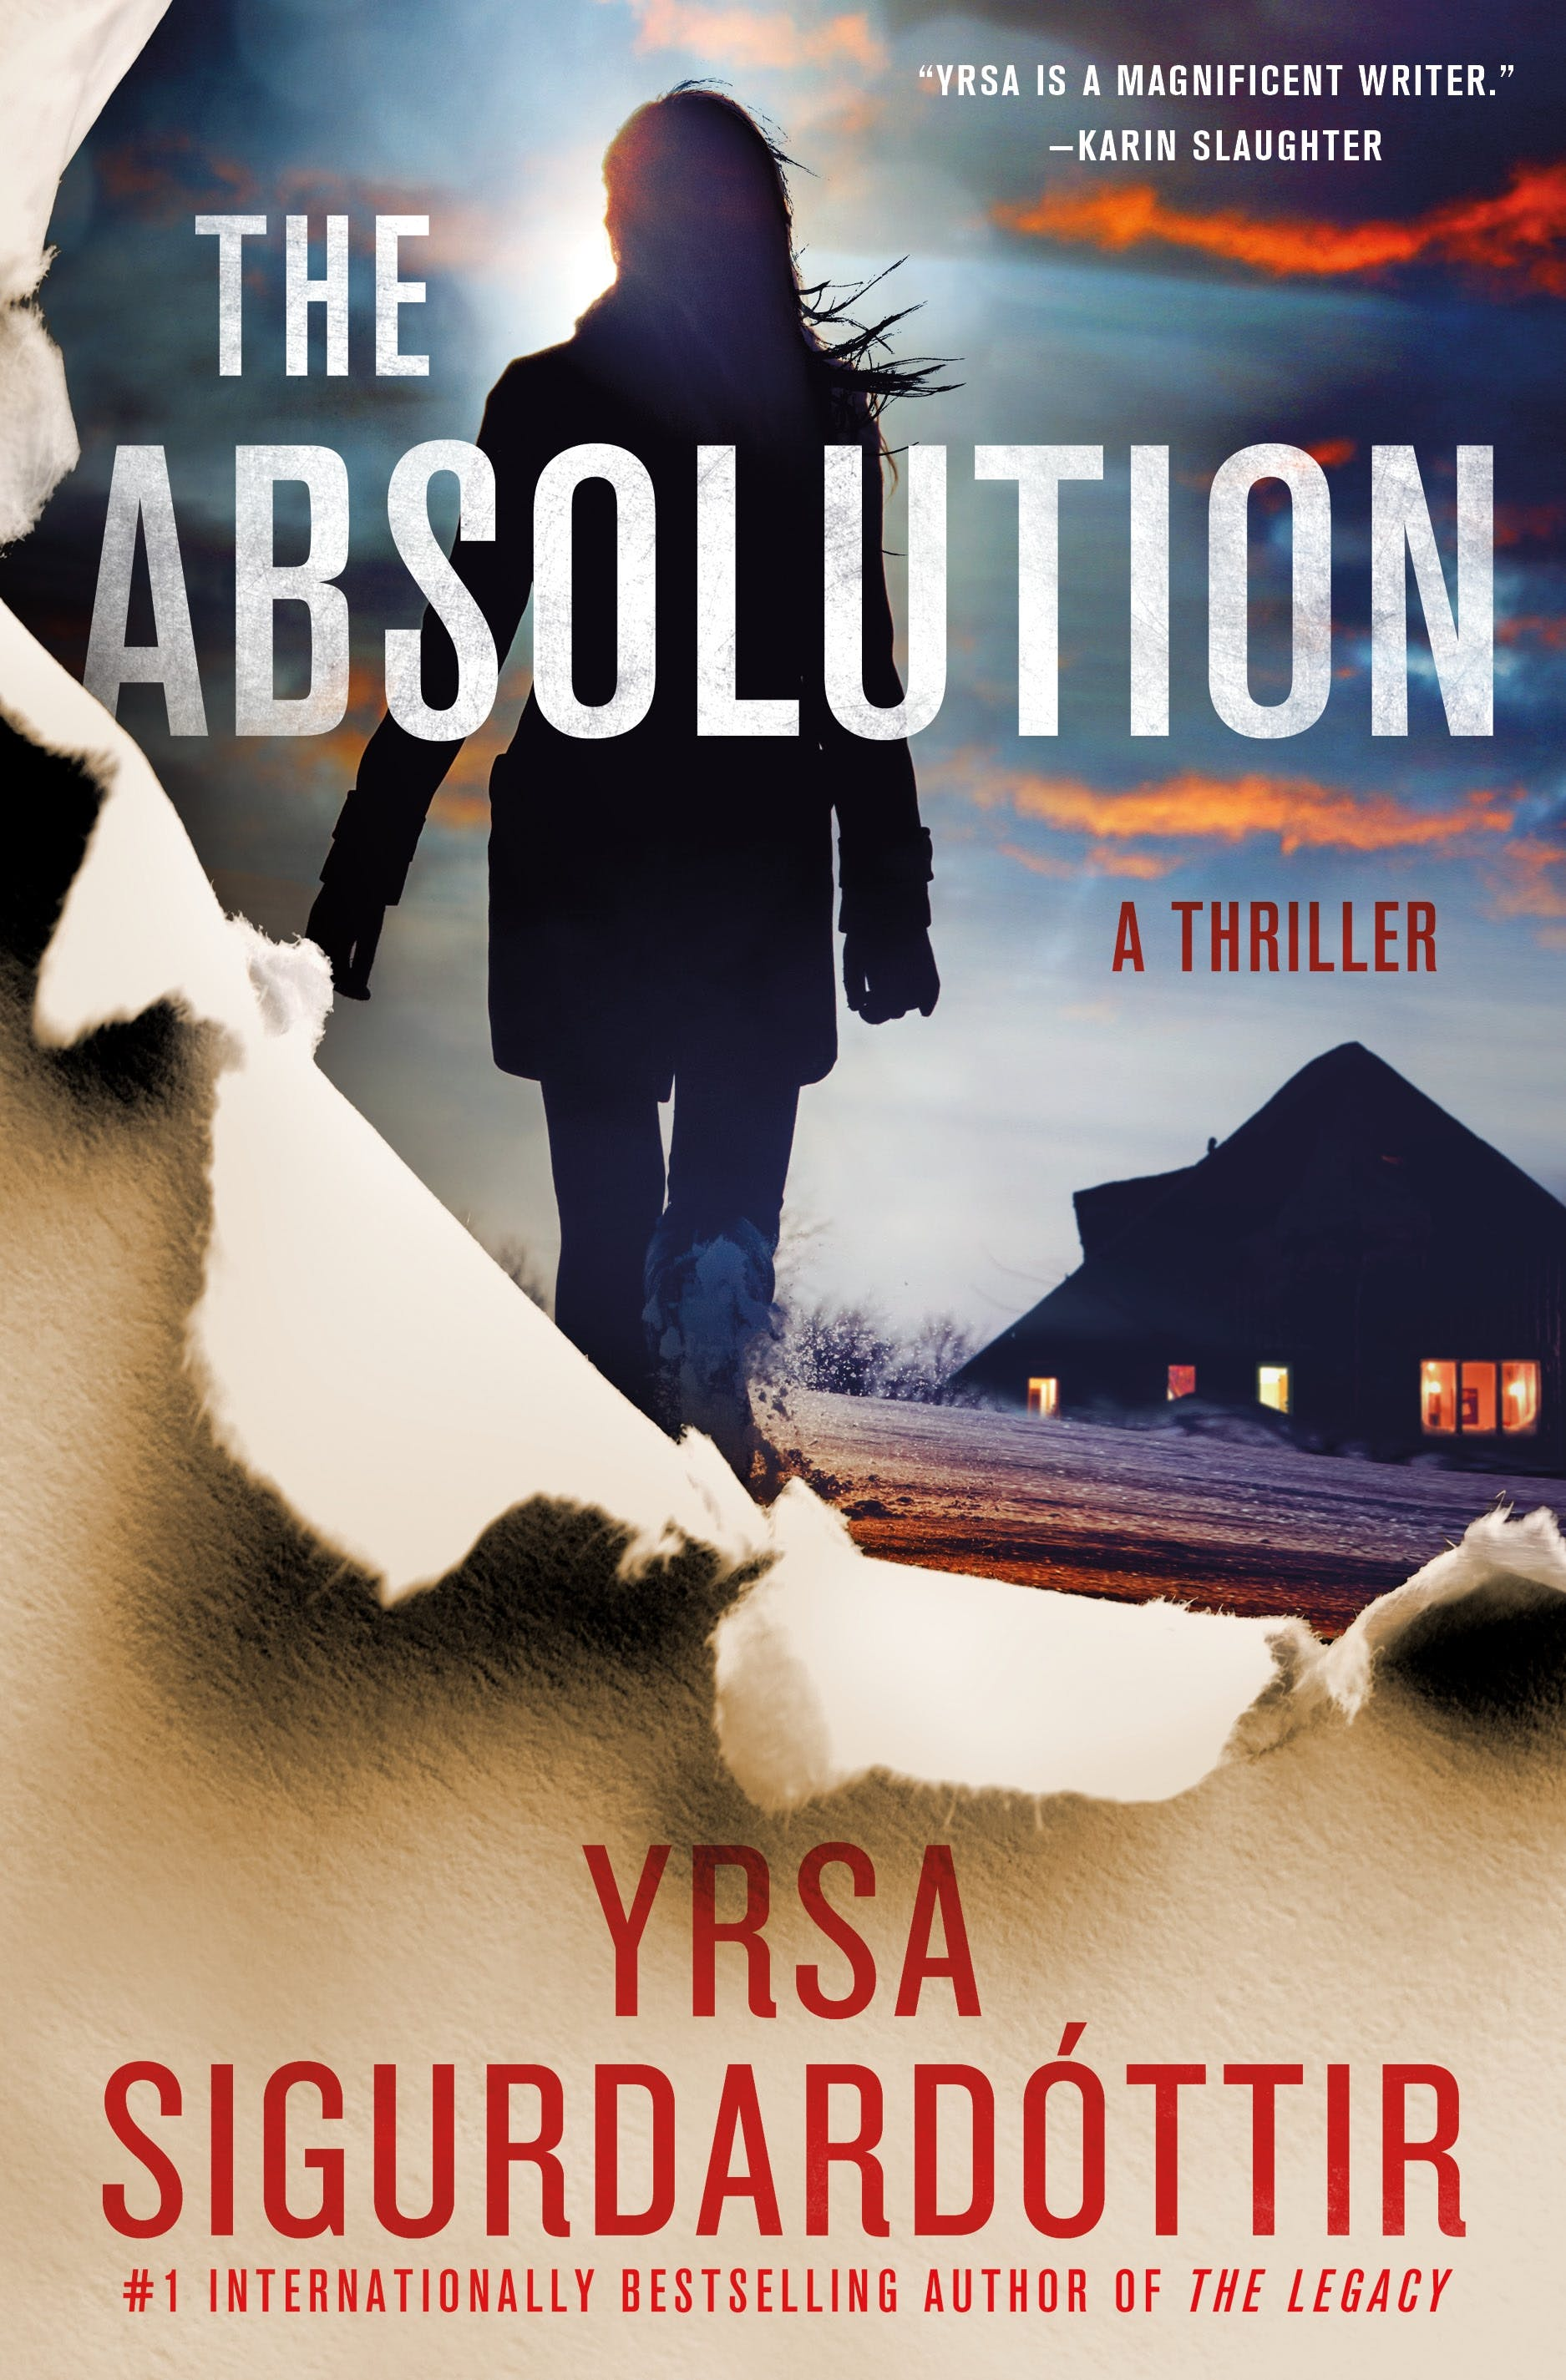 Image of The Absolution